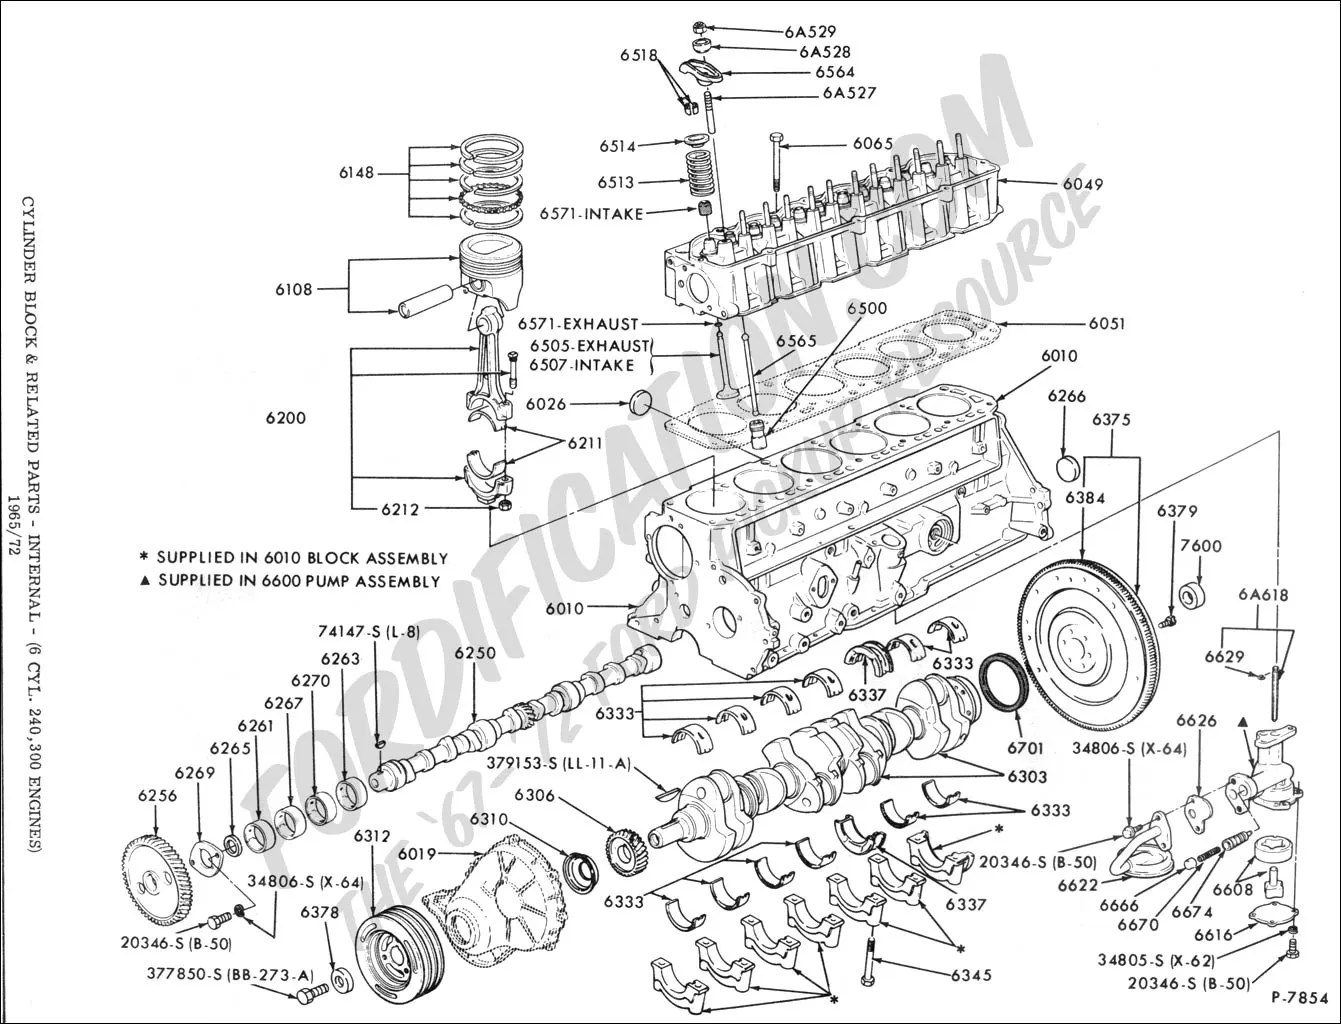 hight resolution of 289 wiring diagram wiring library rh 55 bloxhuette de 1966 ford mustang engine diagram 1966 mustang wiring diagram